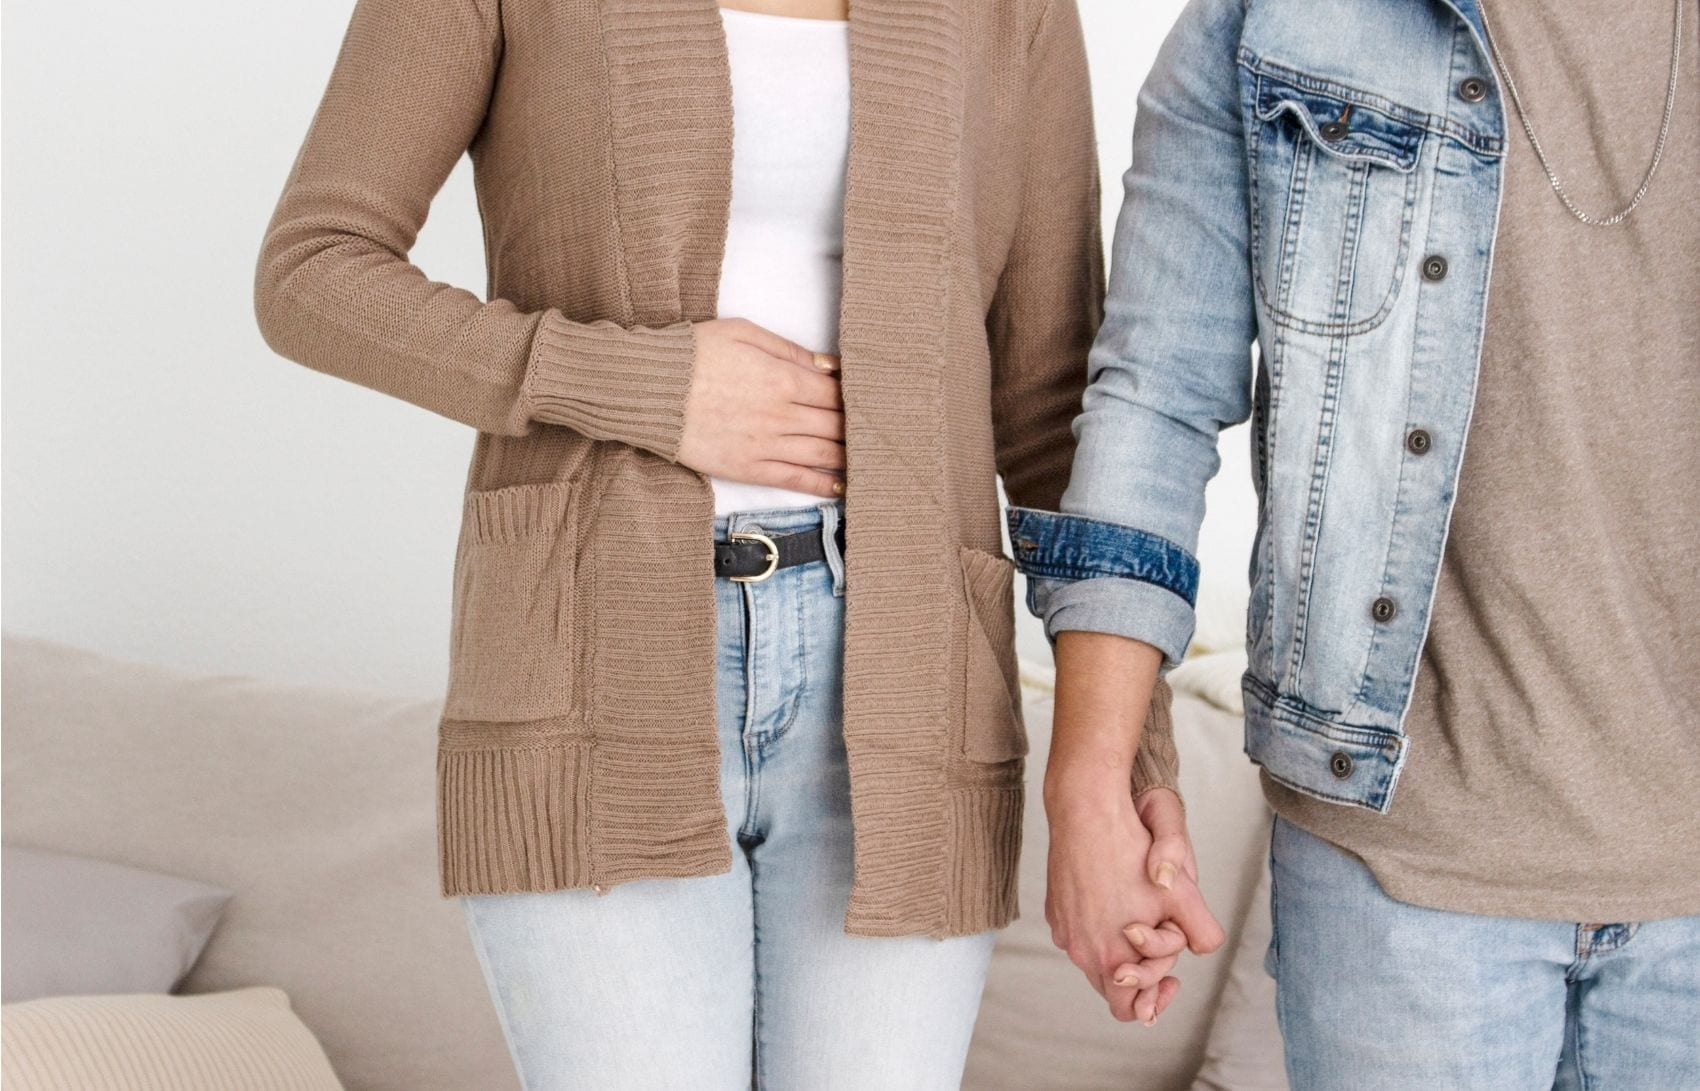 Relationships are tough and full of challenges. Here are a few things you should do if you're feeling bad energy from your new partner!